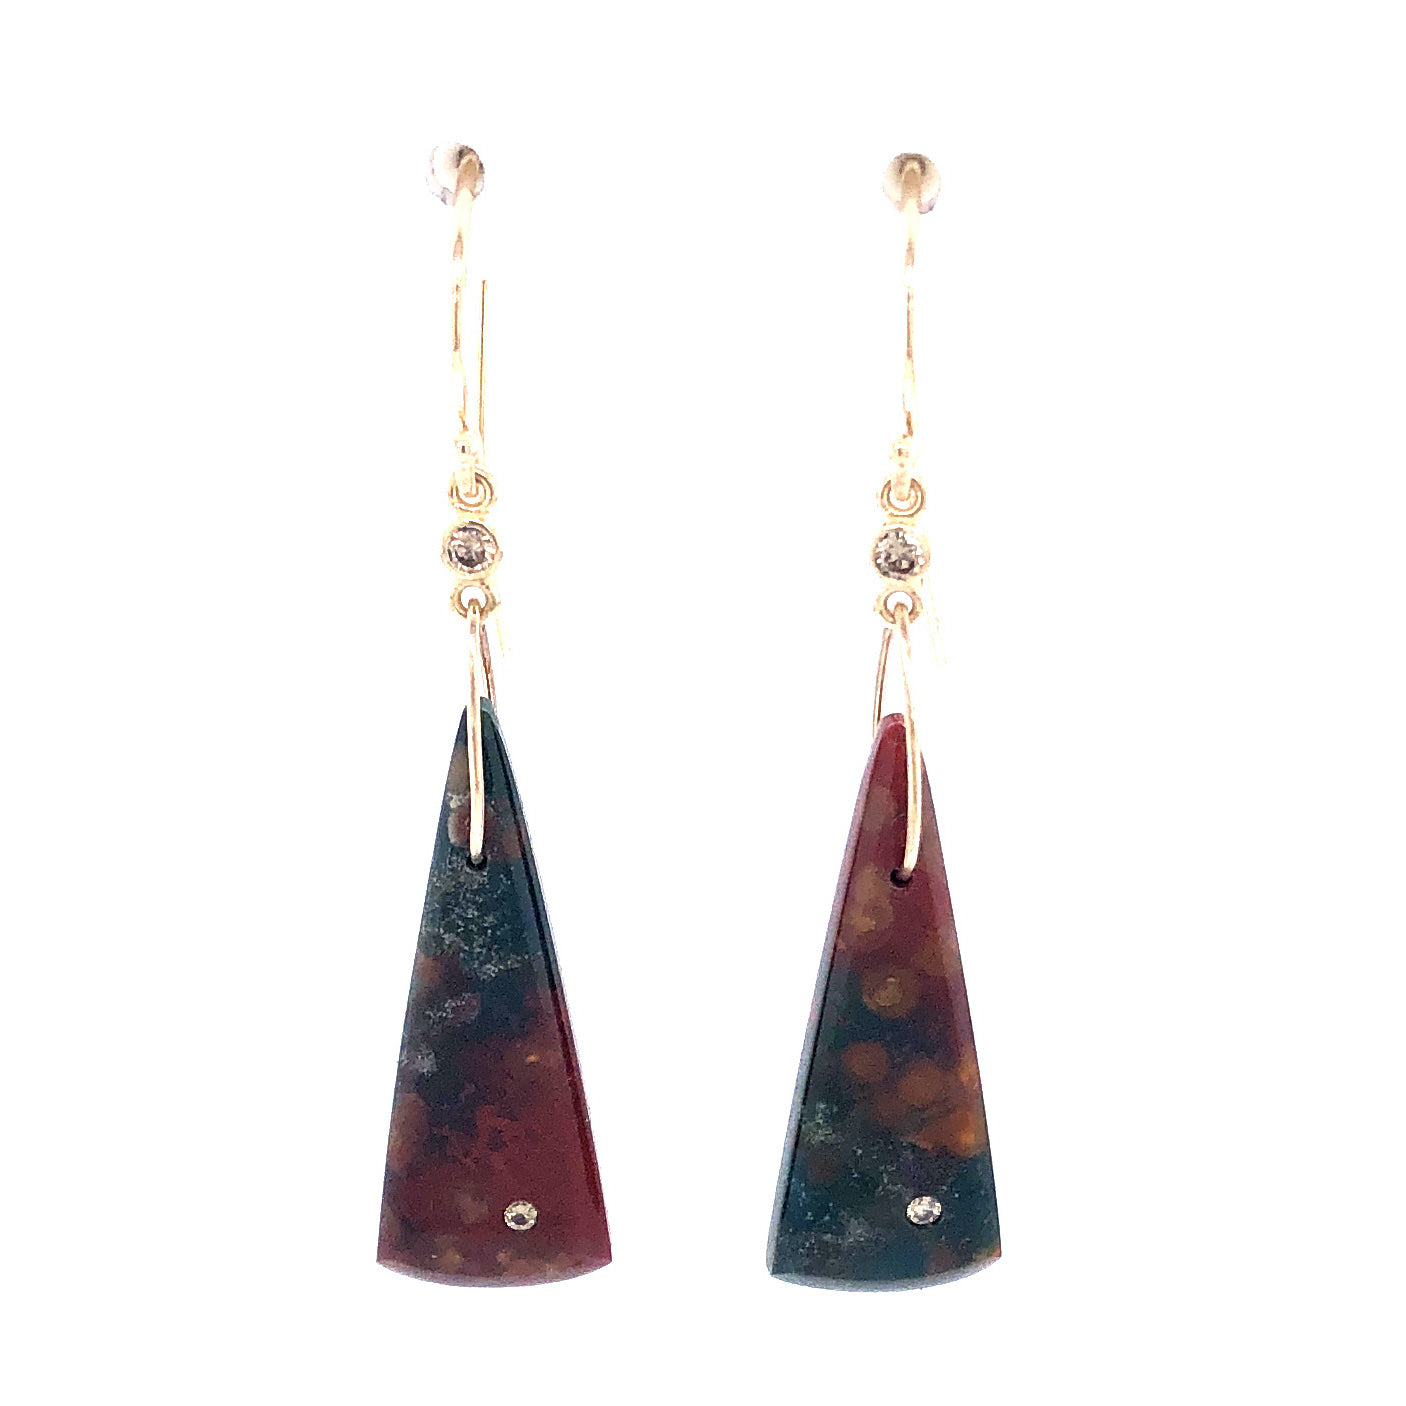 Bloodstone and Diamond Earrings, Handmade in 14k Gold